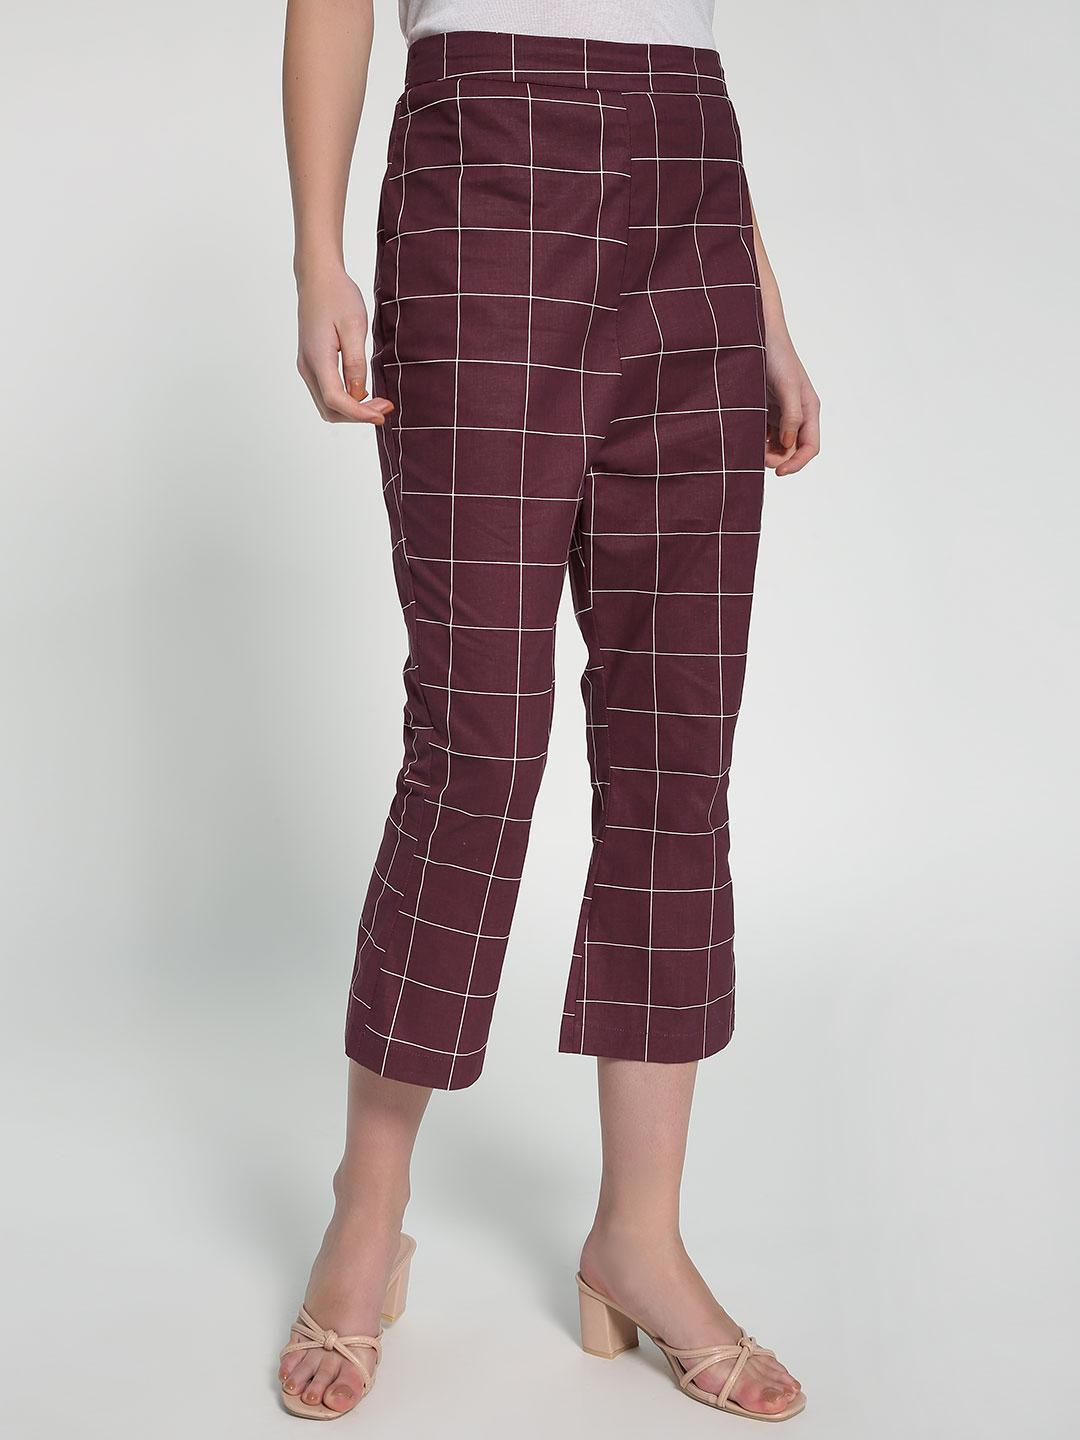 Closet Drama Maroon Grid Check Print Cropped Trousers 1